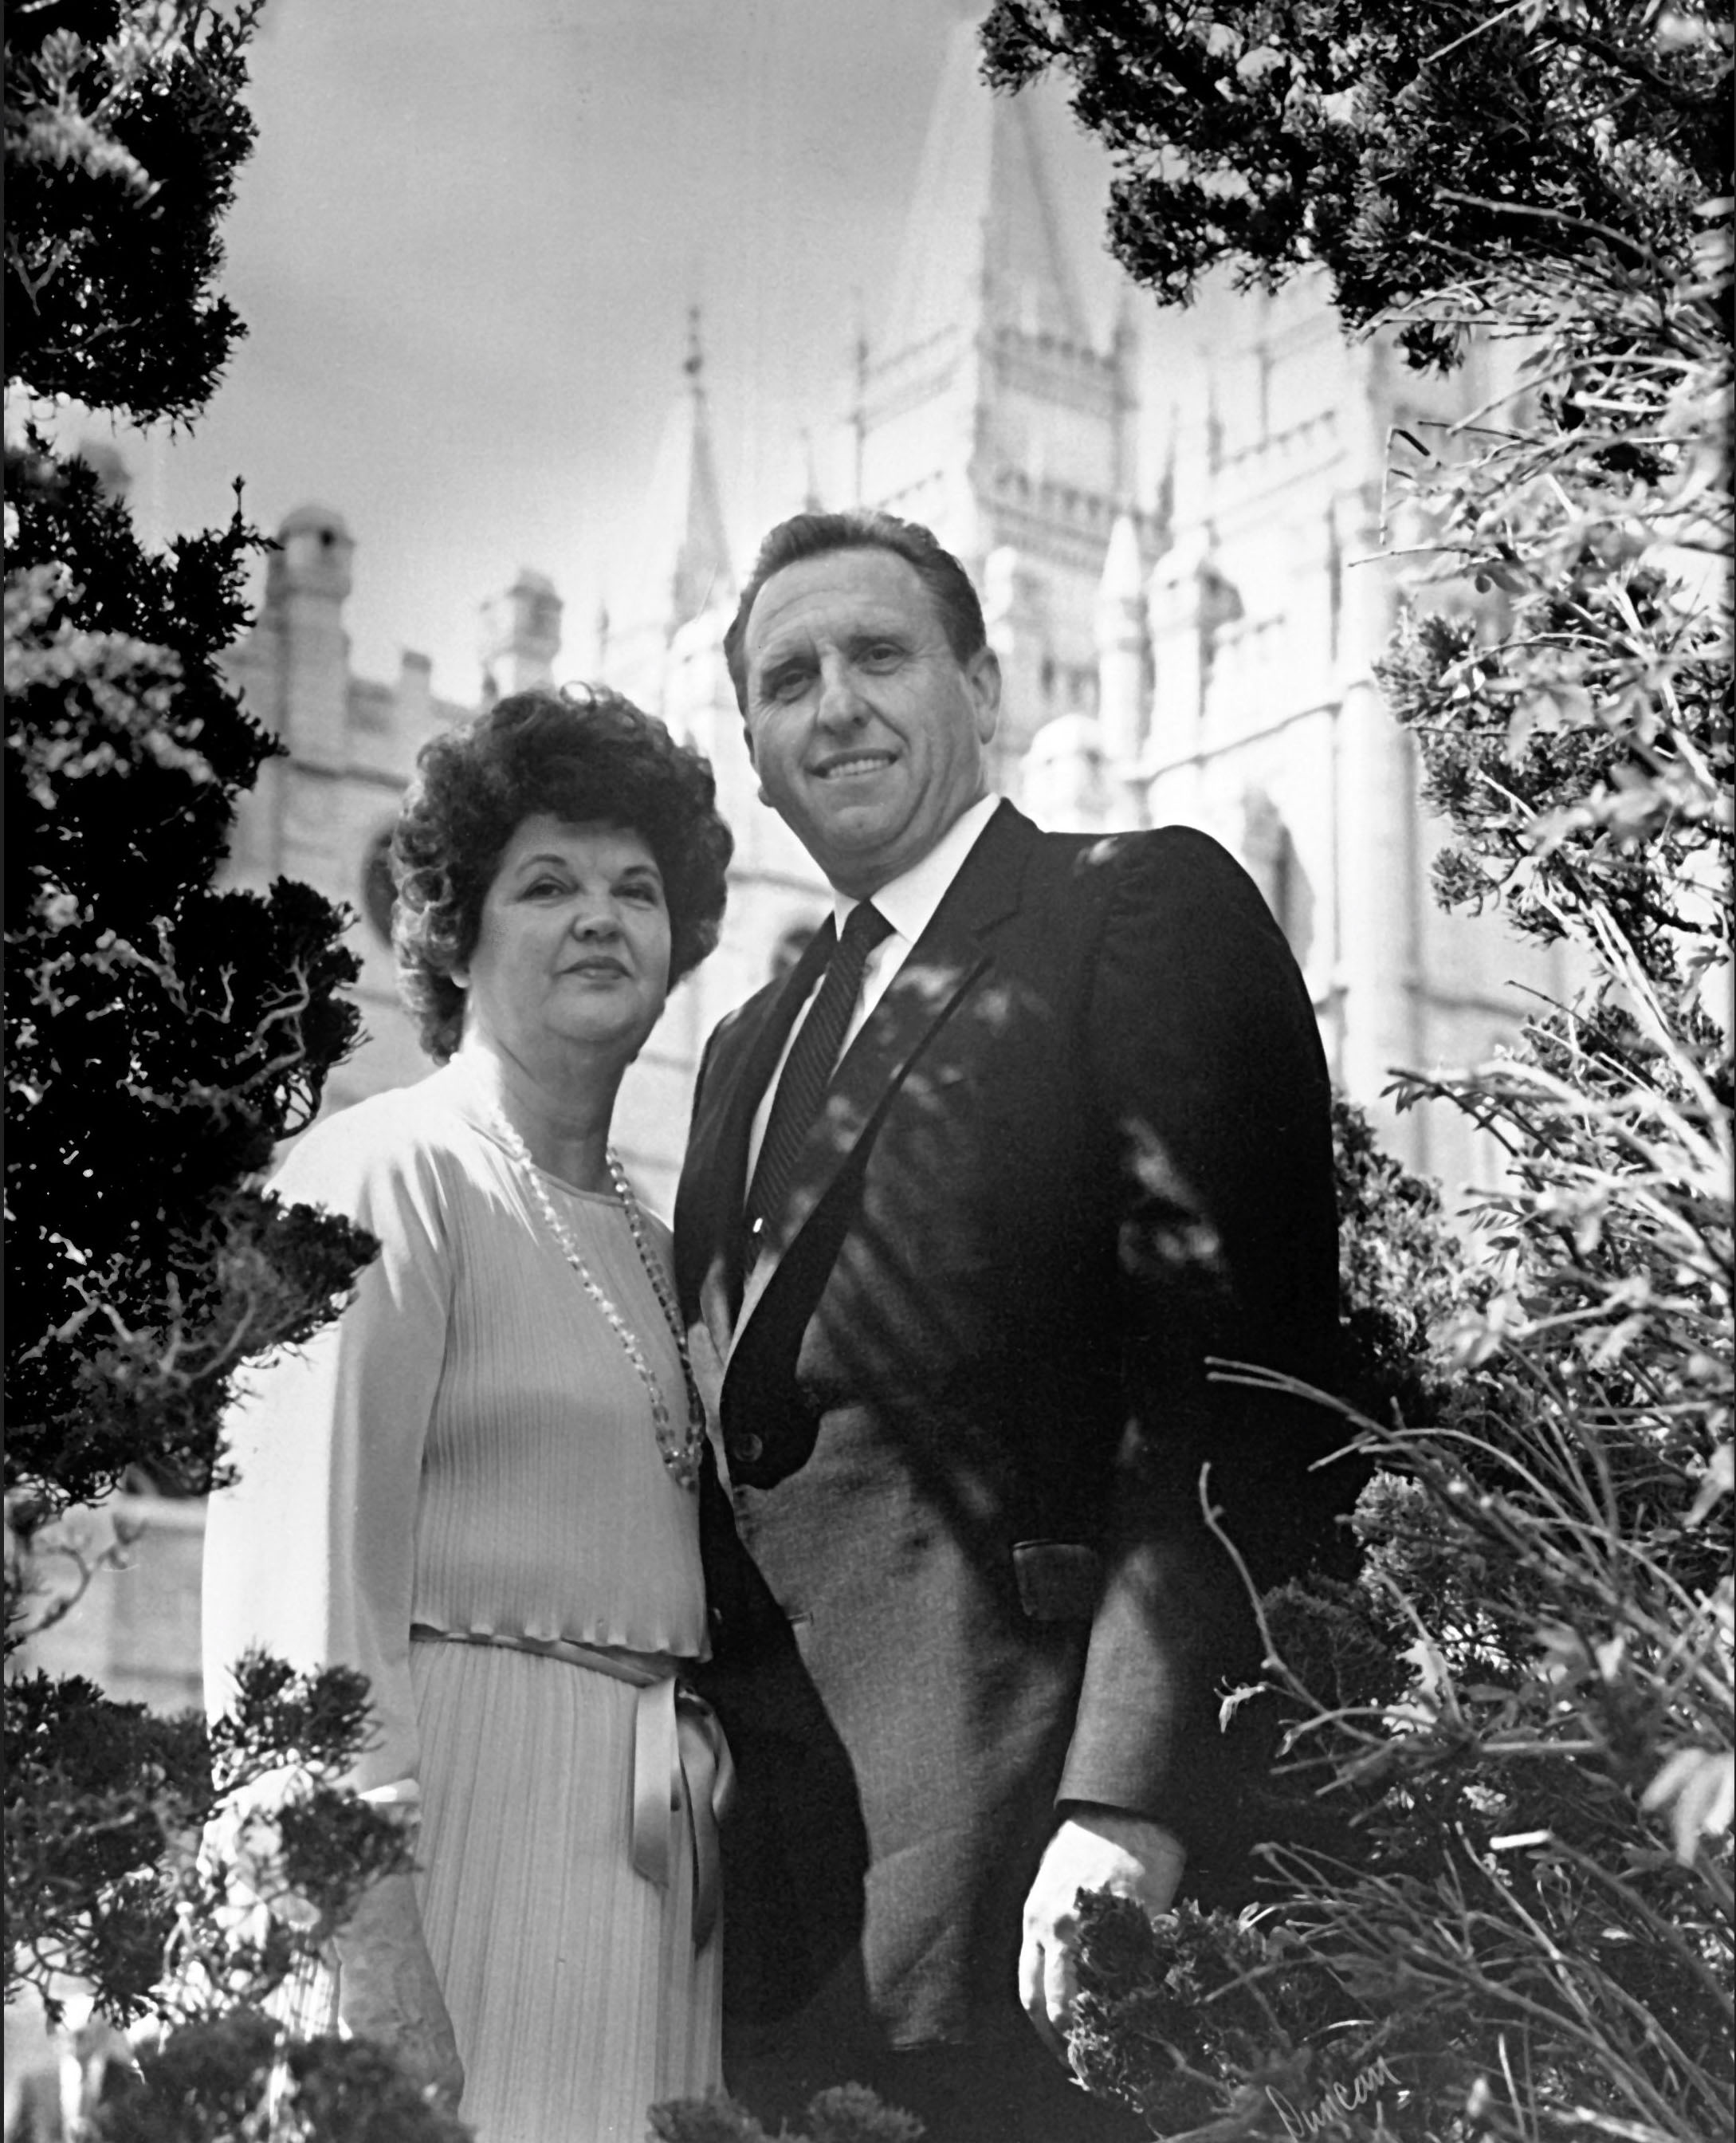 (Photo courtesy LDS Church) President Thomas S. Monson and his wife, Frances, in front of the Salt Lake Temple, where they married Oct. 7, 1948.